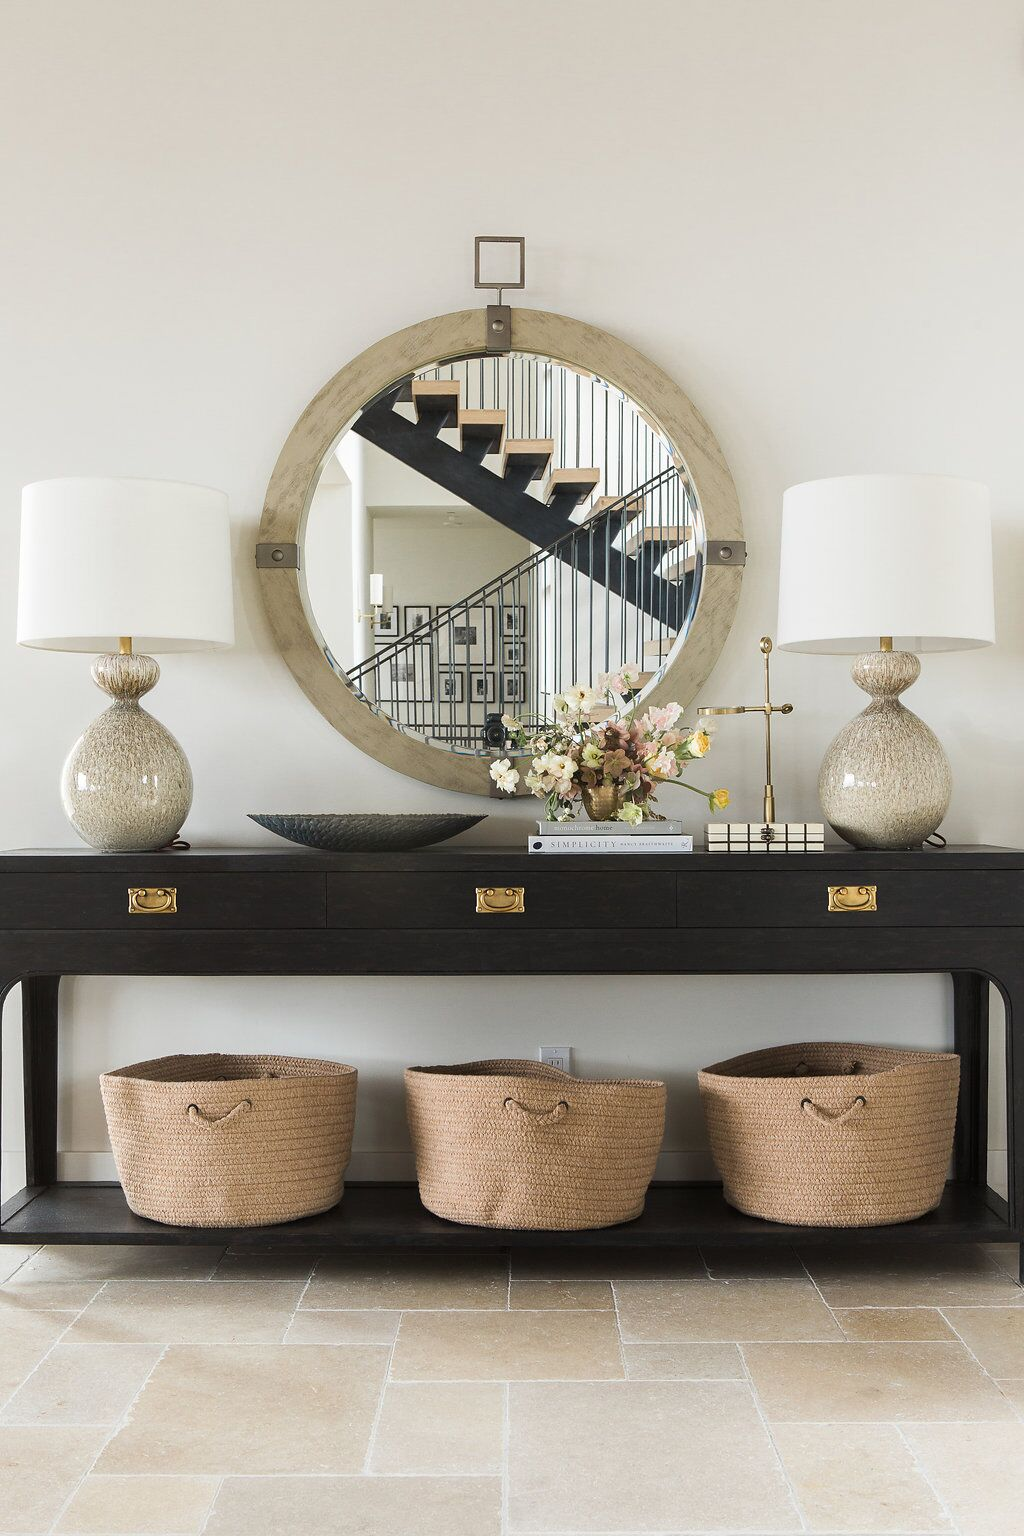 Dark wood table and mirror in entryway of home